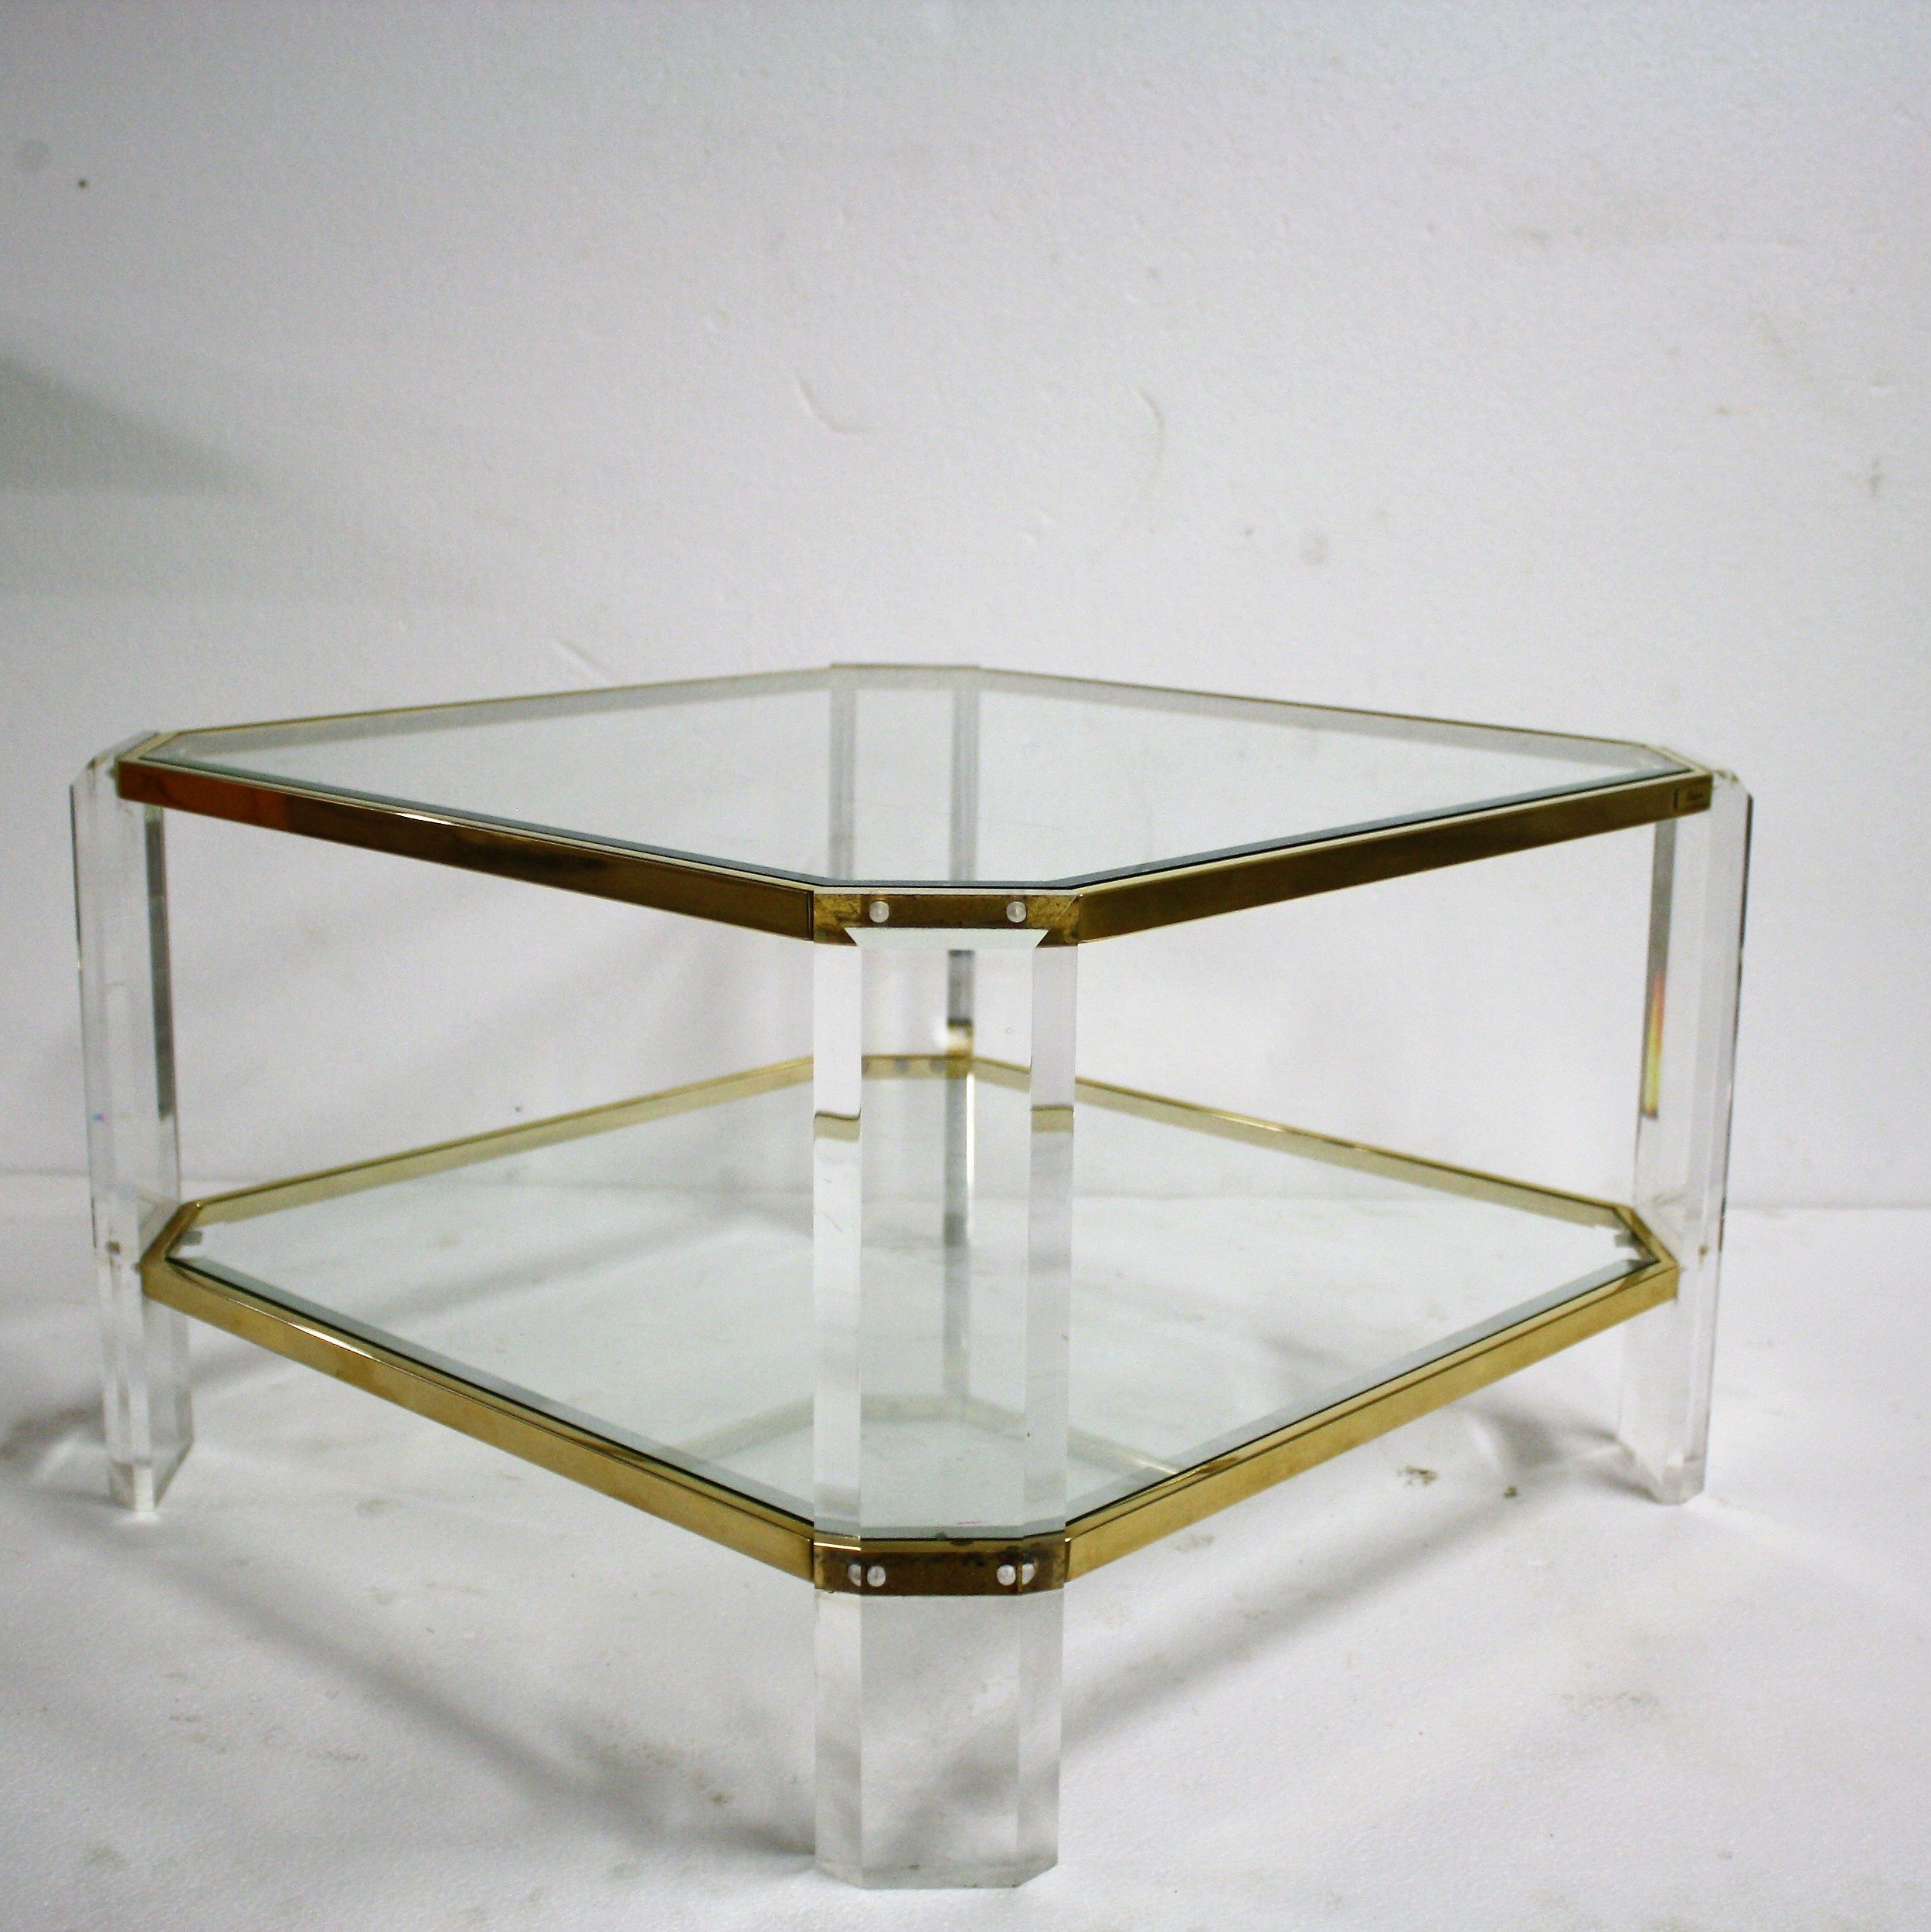 Lucite Coffee Table.Brass Lucite Coffee Table By Fedam 1970s